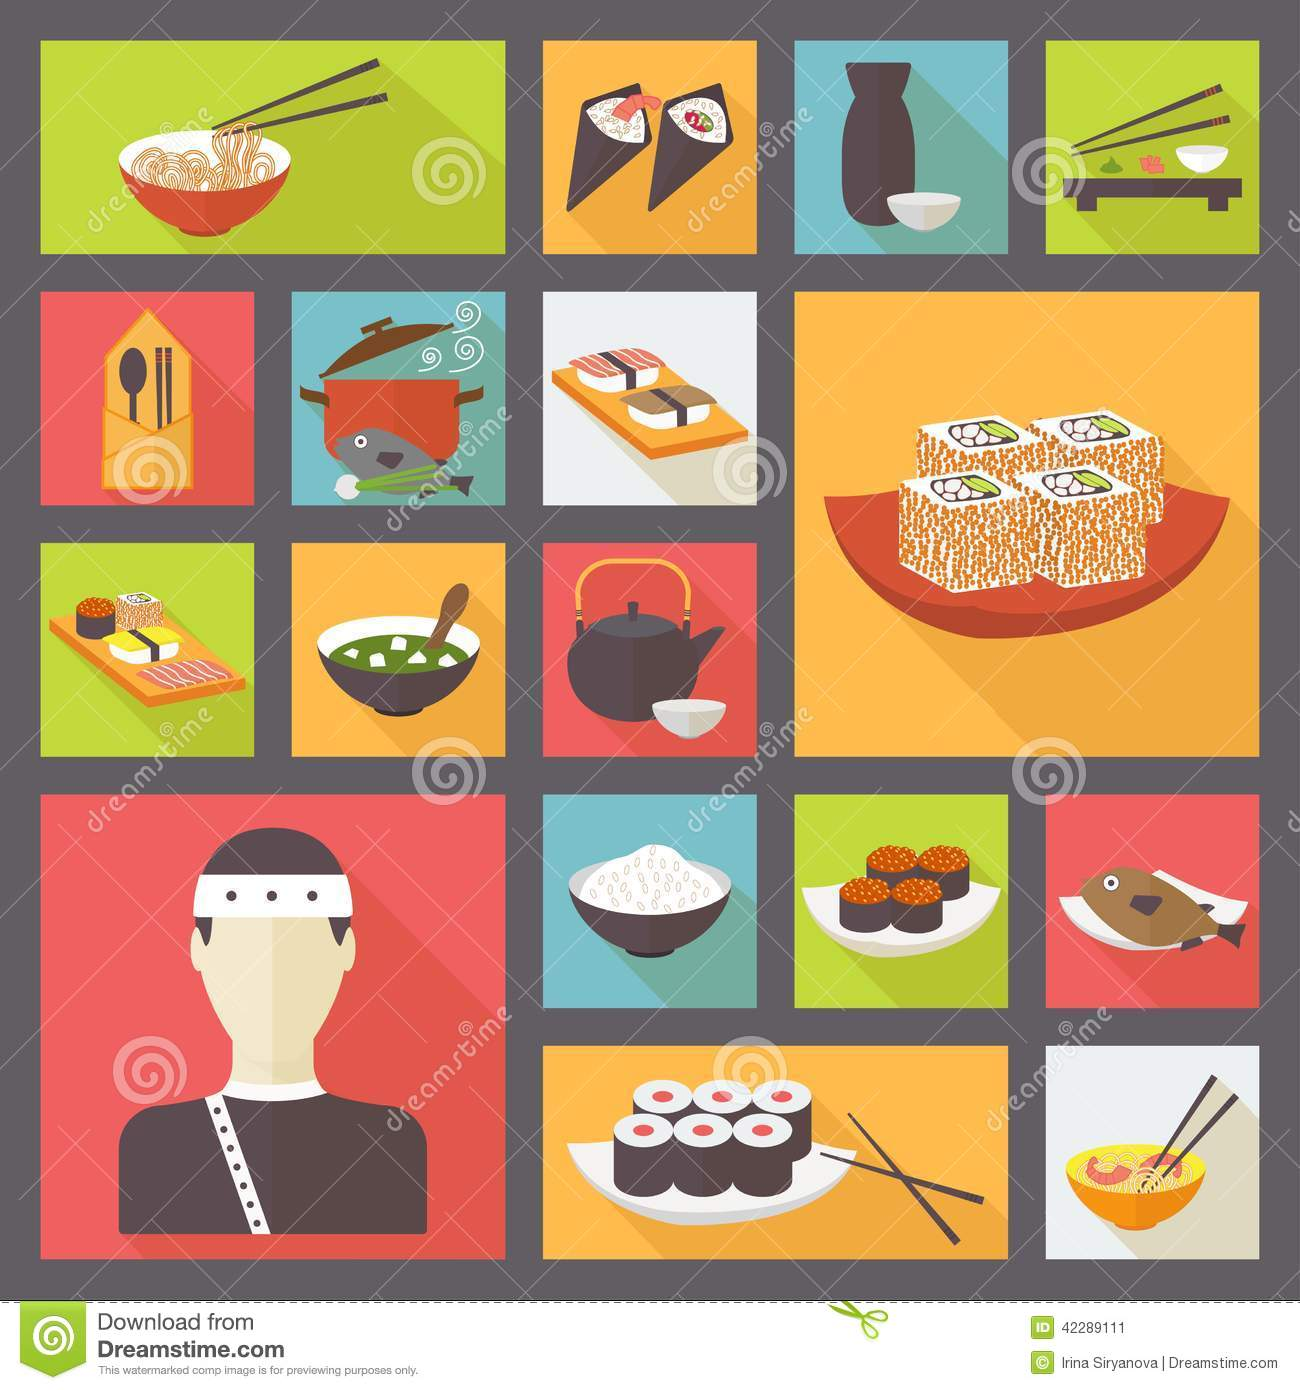 thumbs.dreamstime.com/z/japanese-cuisine-food-icons-set-flat-design-sushi-rolls-vector-42289111.jpg